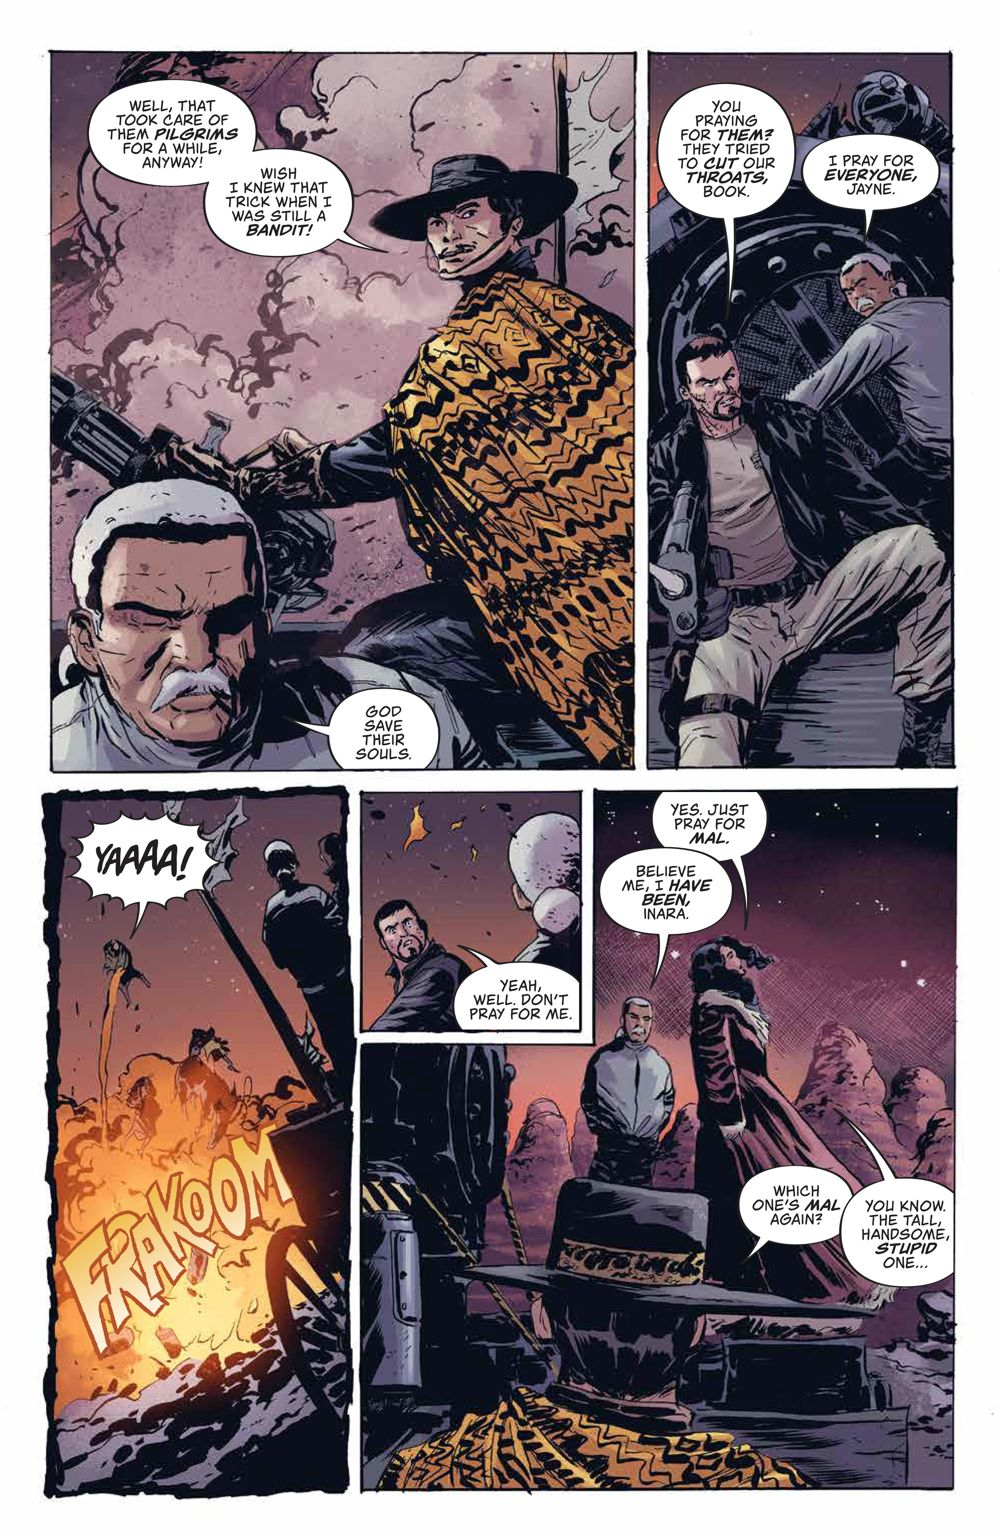 Firefly_UnificationWar_v2_SC_PRESS_11 ComicList Previews: FIREFLY THE UNIFICATION WAR VOLUME 2 TP